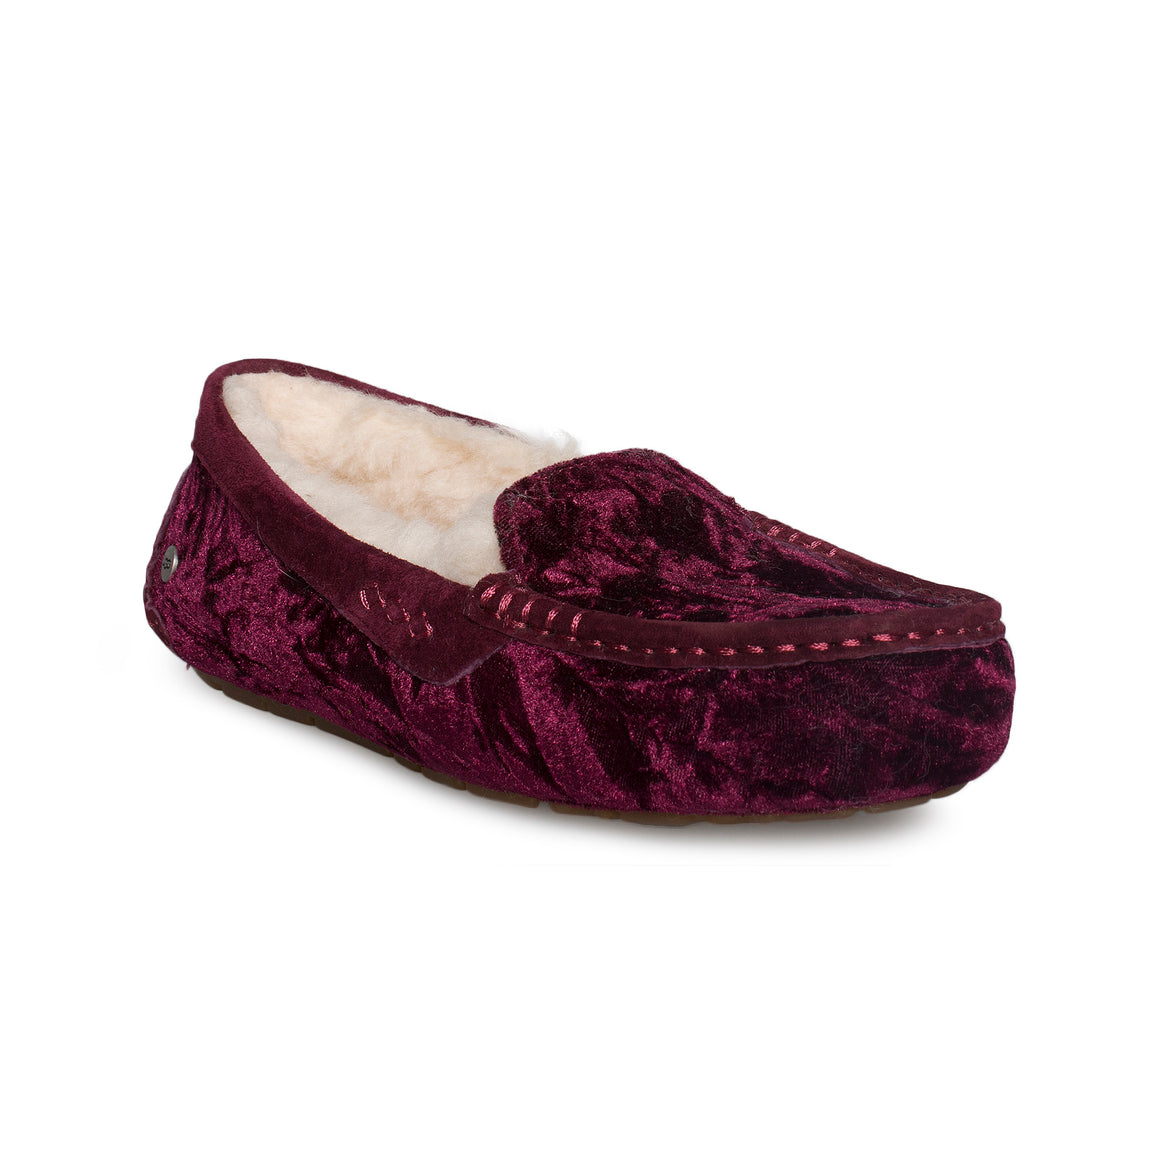 UGG Ansley Crushed Velvet Fig Slippers